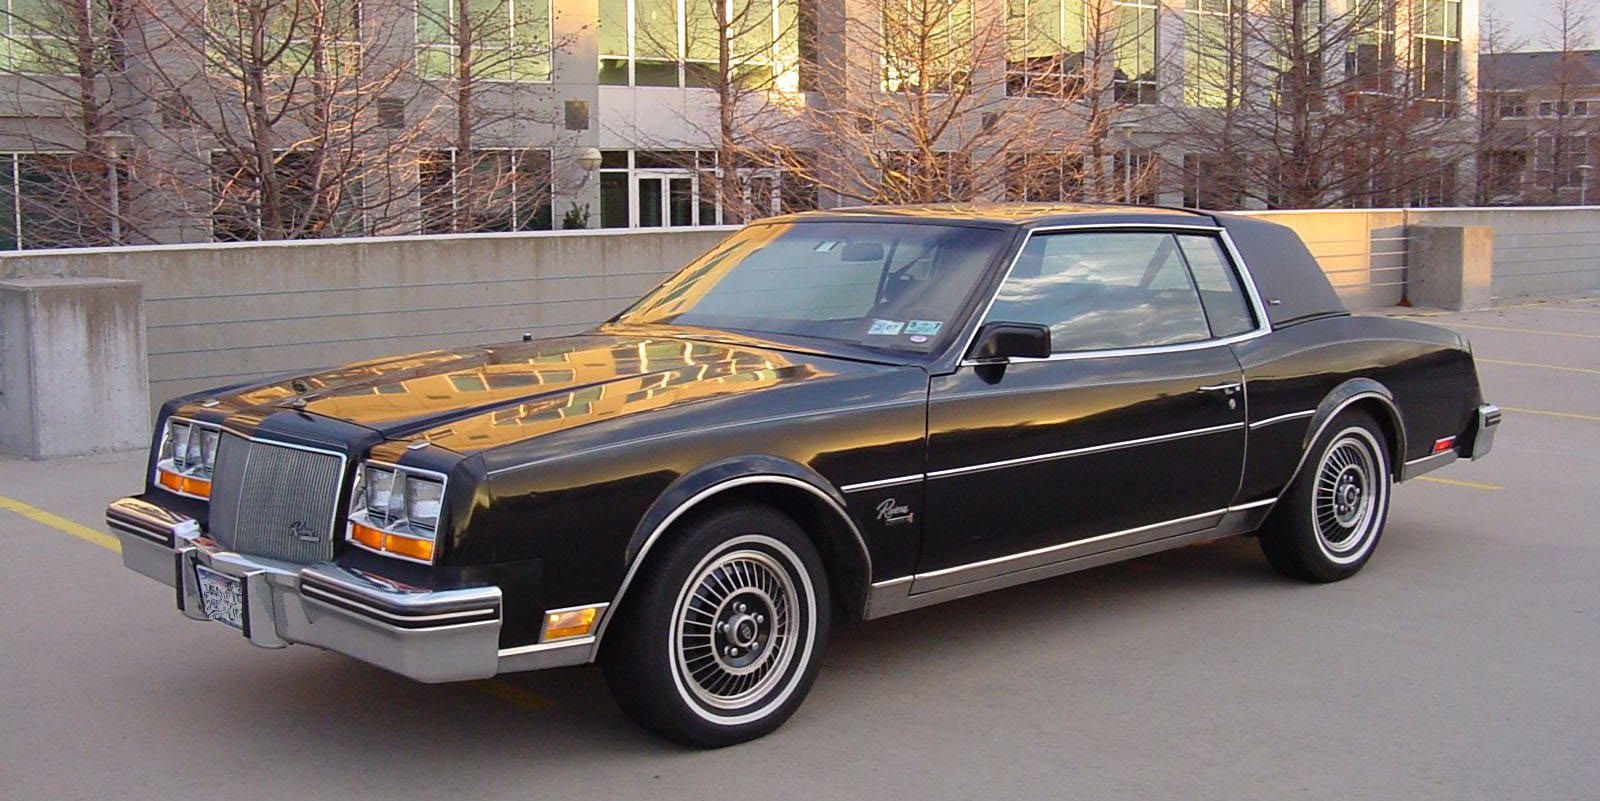 1984 Buick Riviera T Type Maintenance Restoration Of Old Vintage Vehicles The Material For New Cogs Casters Gears Pa Buick Riviera Buick Jeep Cherokee Sport